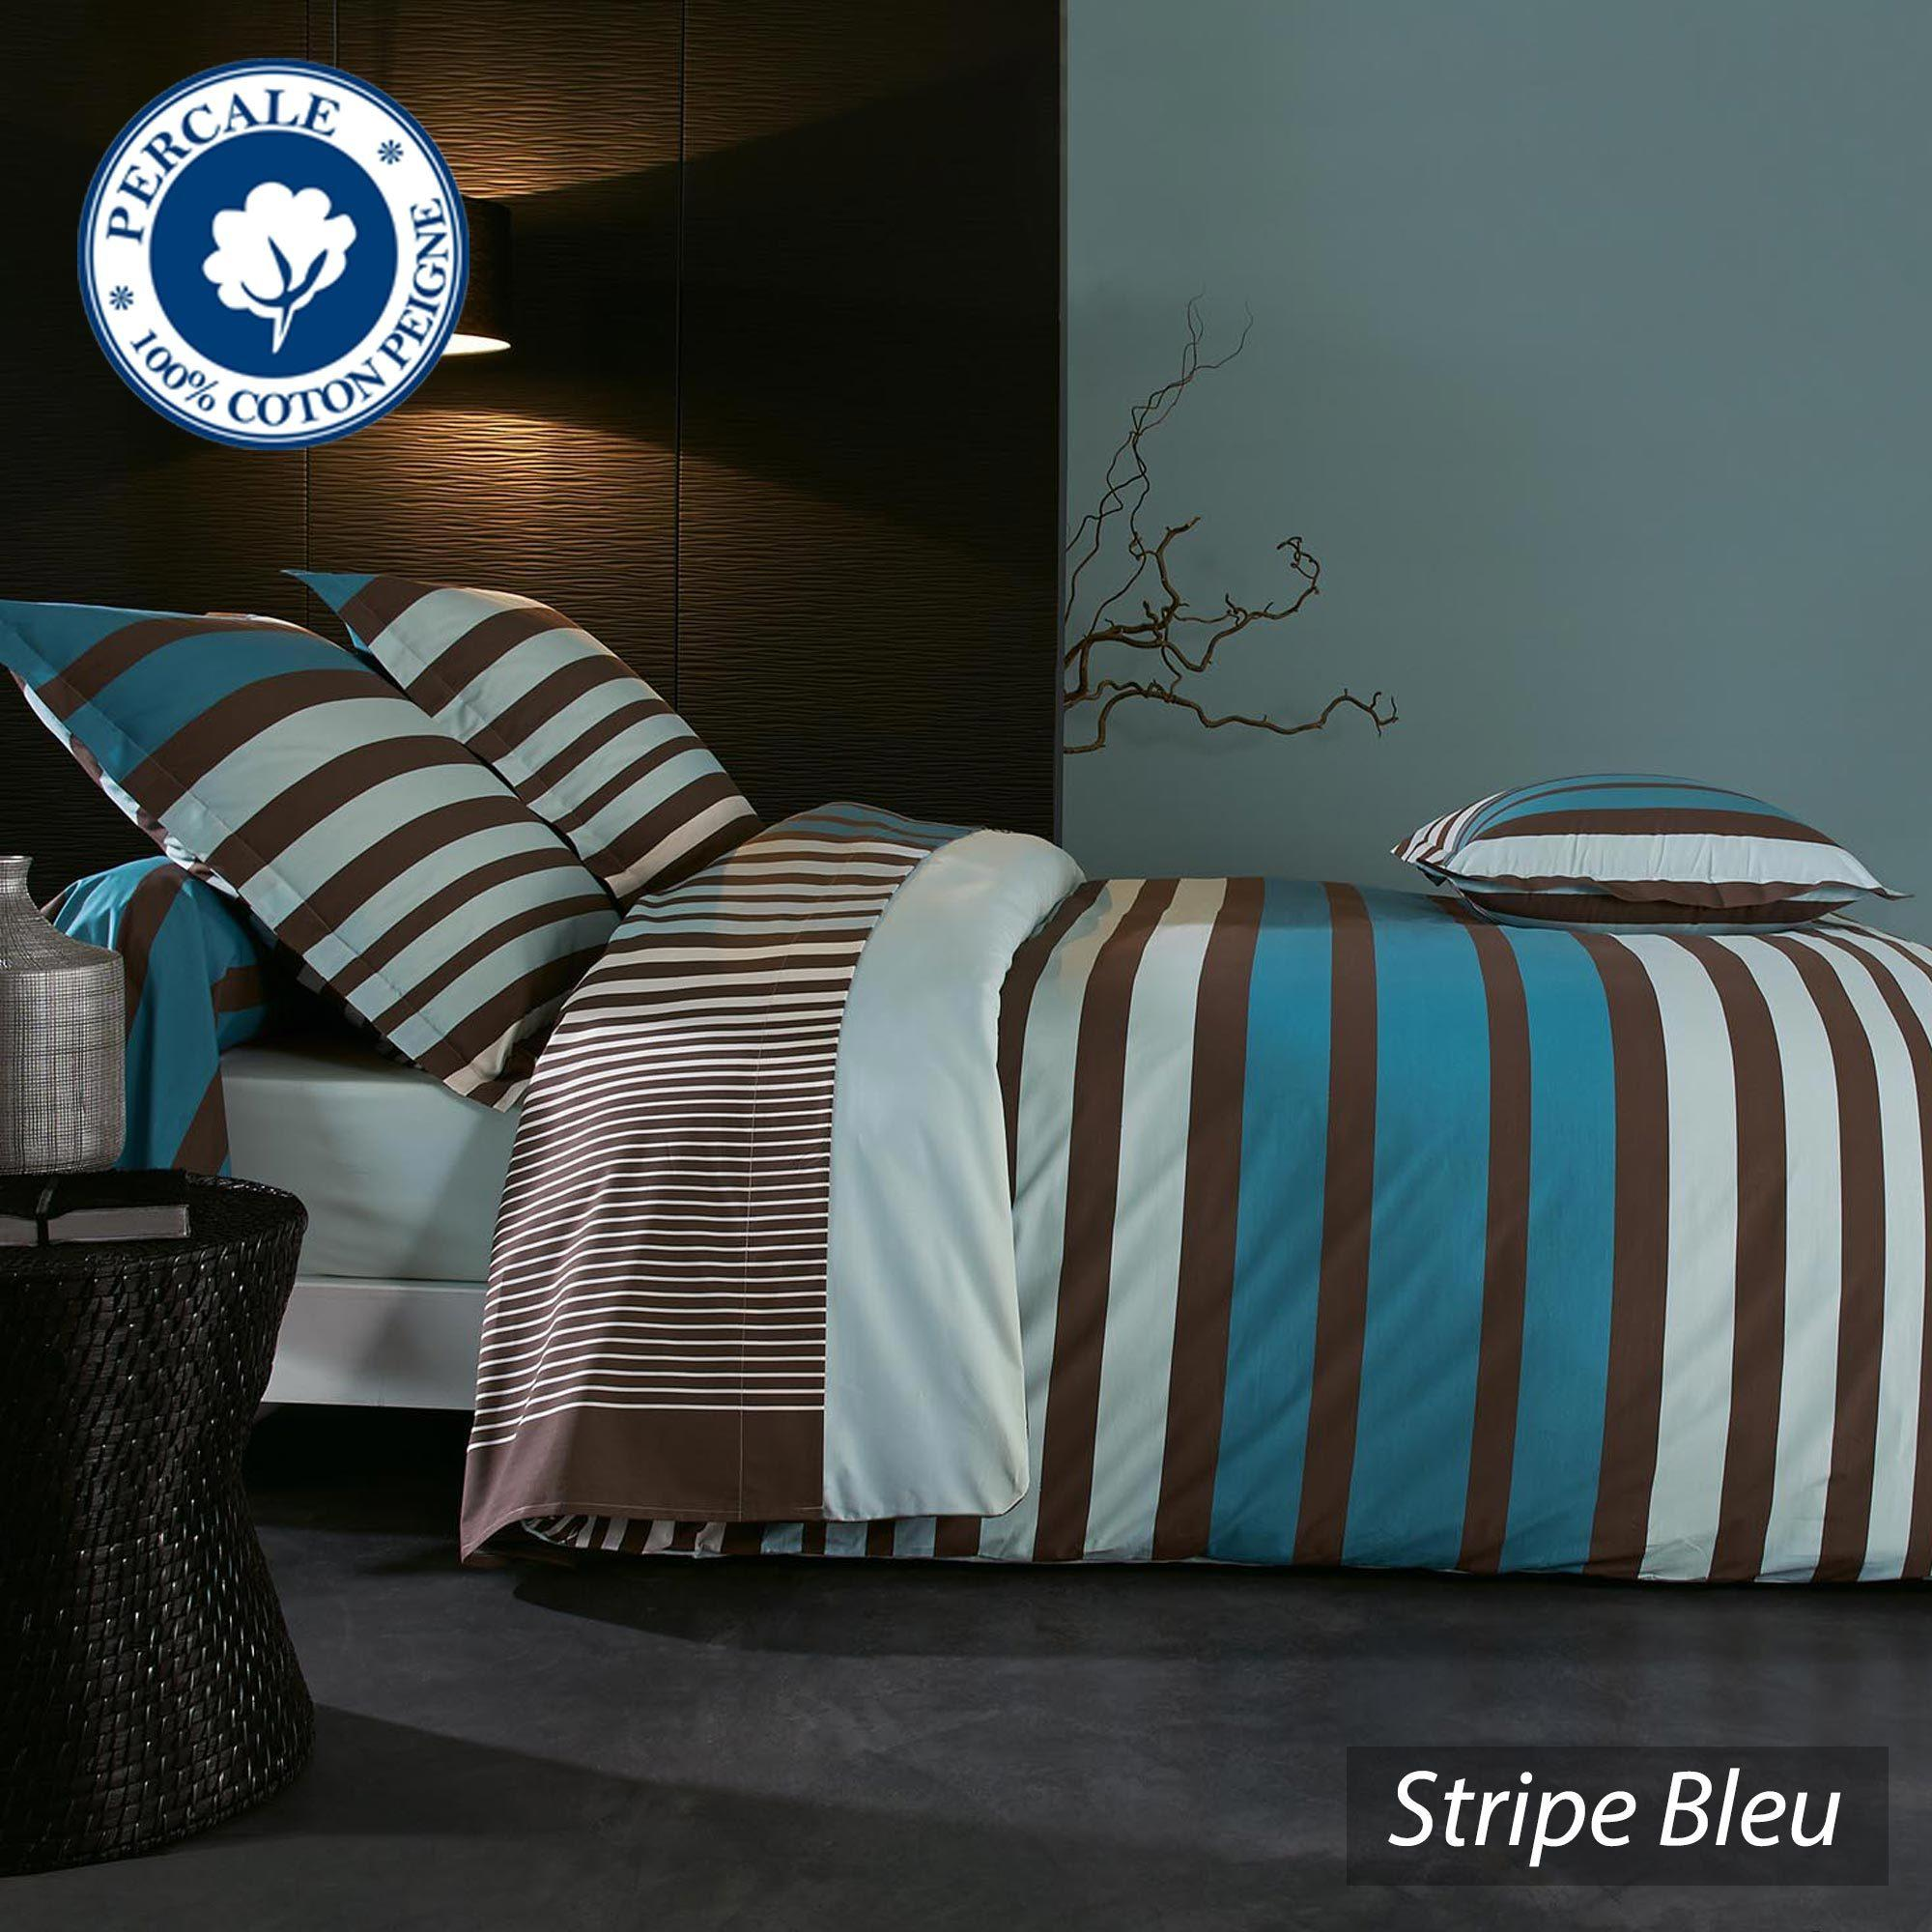 housse de couette percale pur coton peign 200x200 cm stripe bleu linnea vente de linge de maison. Black Bedroom Furniture Sets. Home Design Ideas